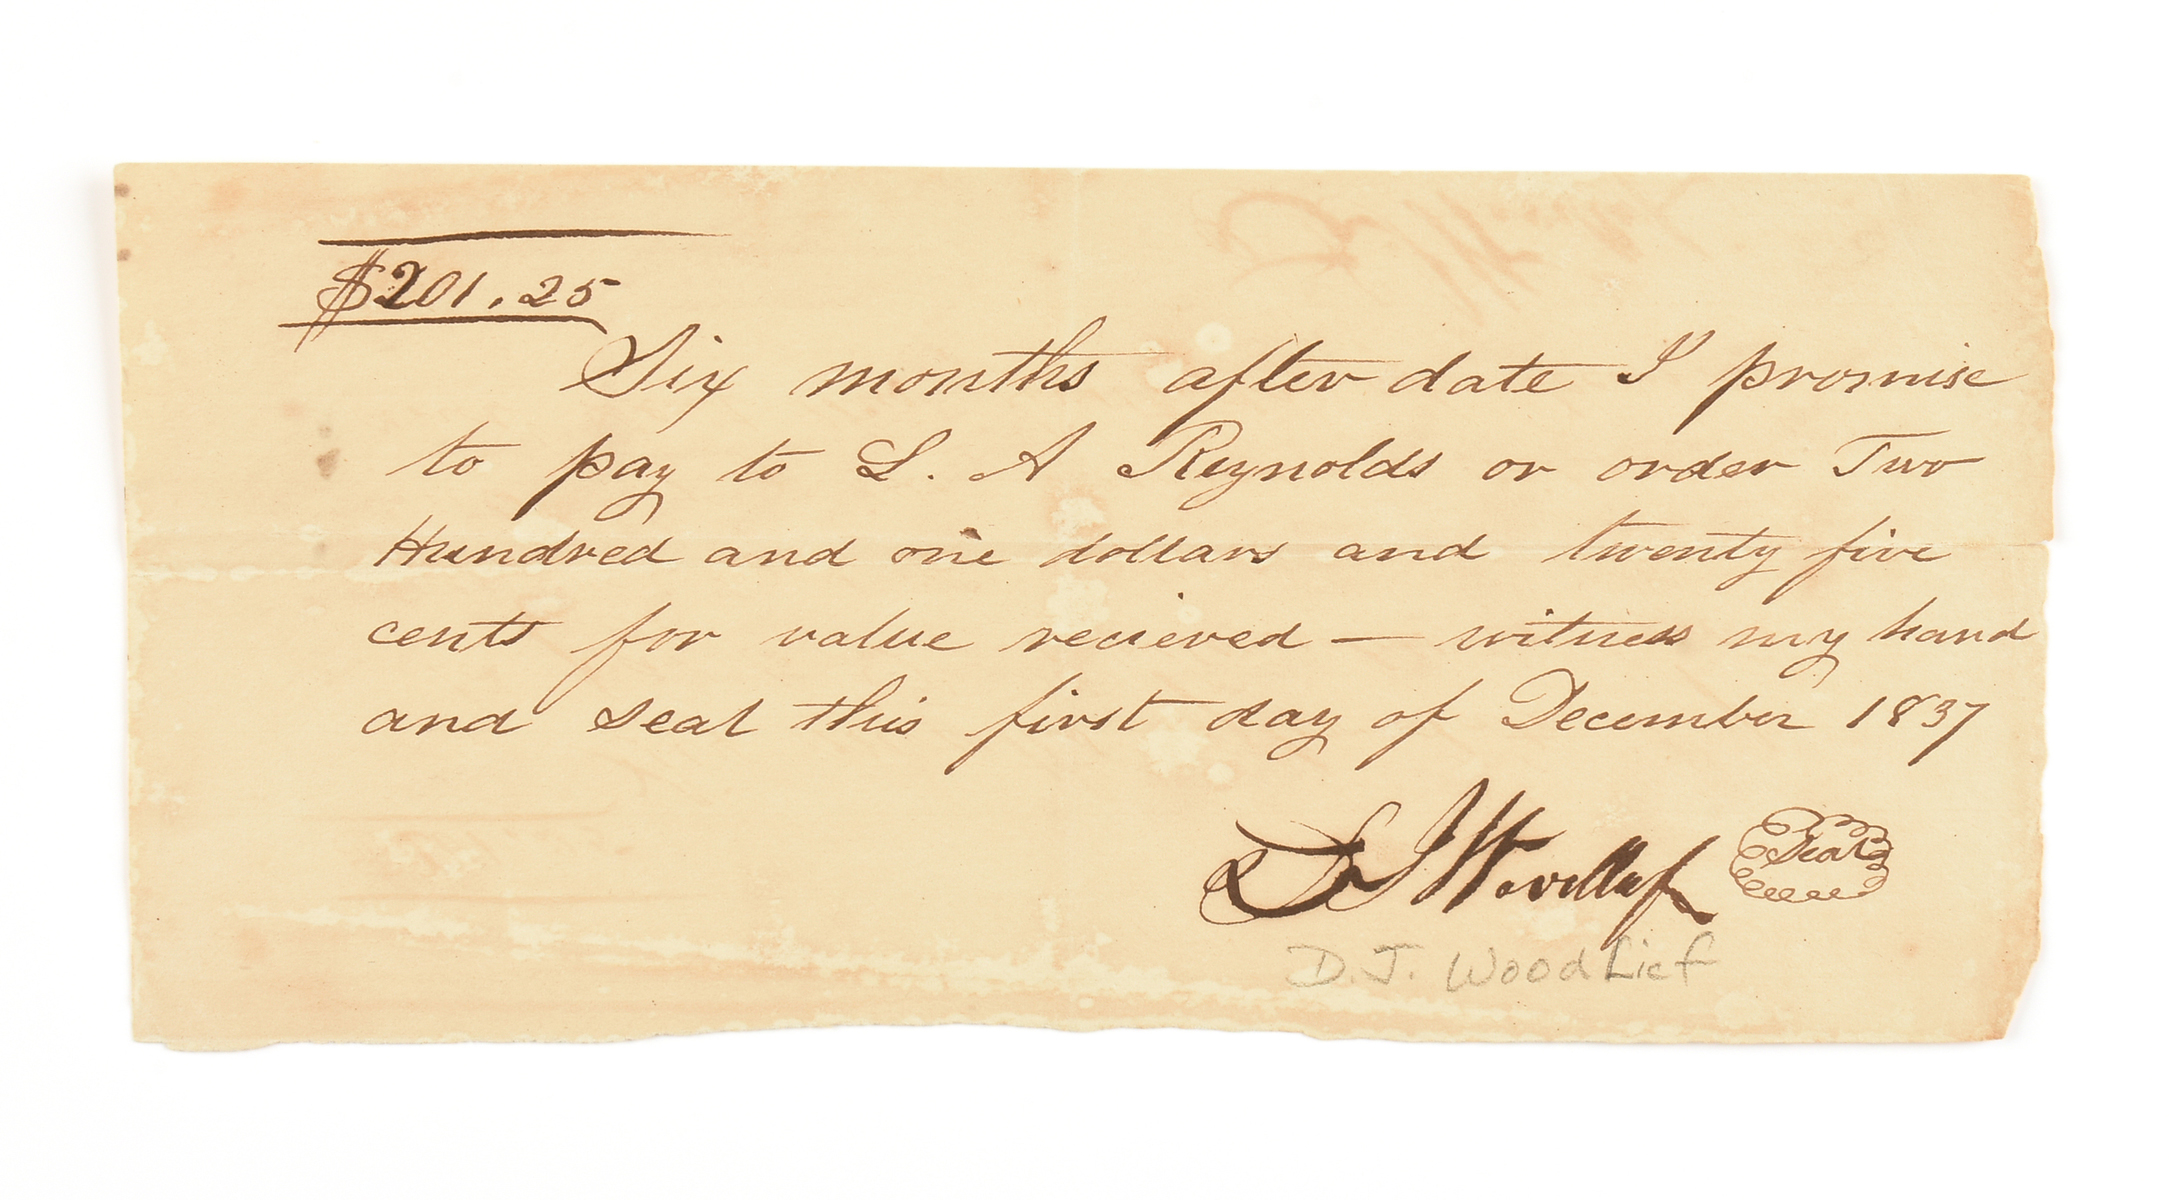 Lot 11 - A REPUBLIC OF TEXAS PROMISSARY NOTE, J. DEVERAUX WOODLIEF (1806-1854) SIGNED AND DATED DECEMBER 1,